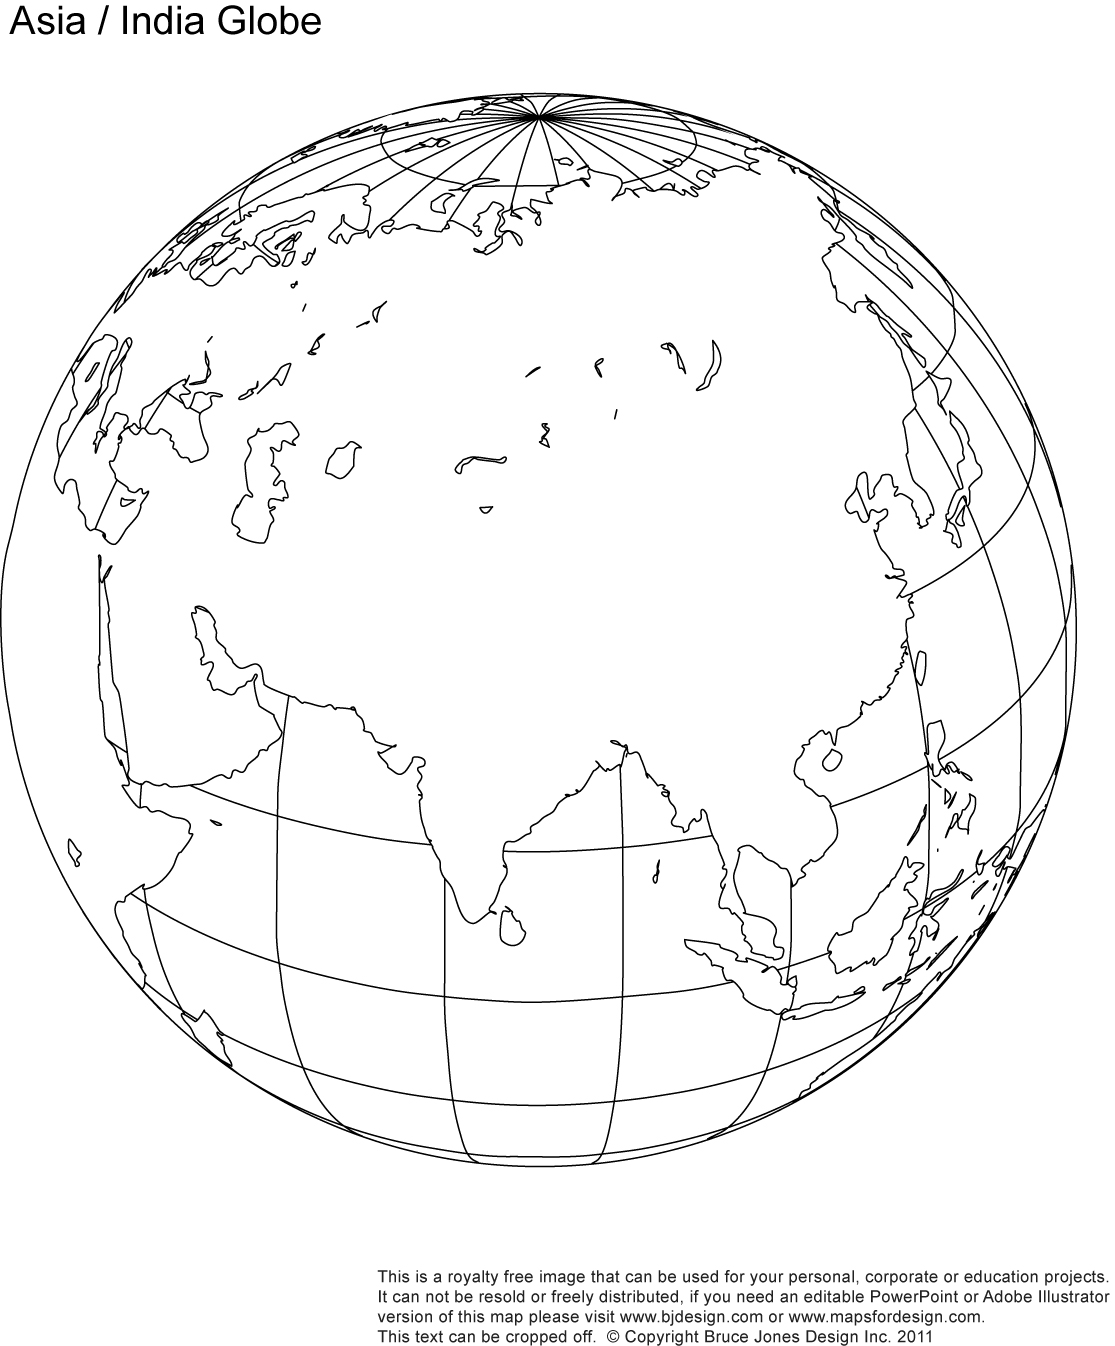 Asia, India Globe Map, printable, blank, outline, royalty free, jpg